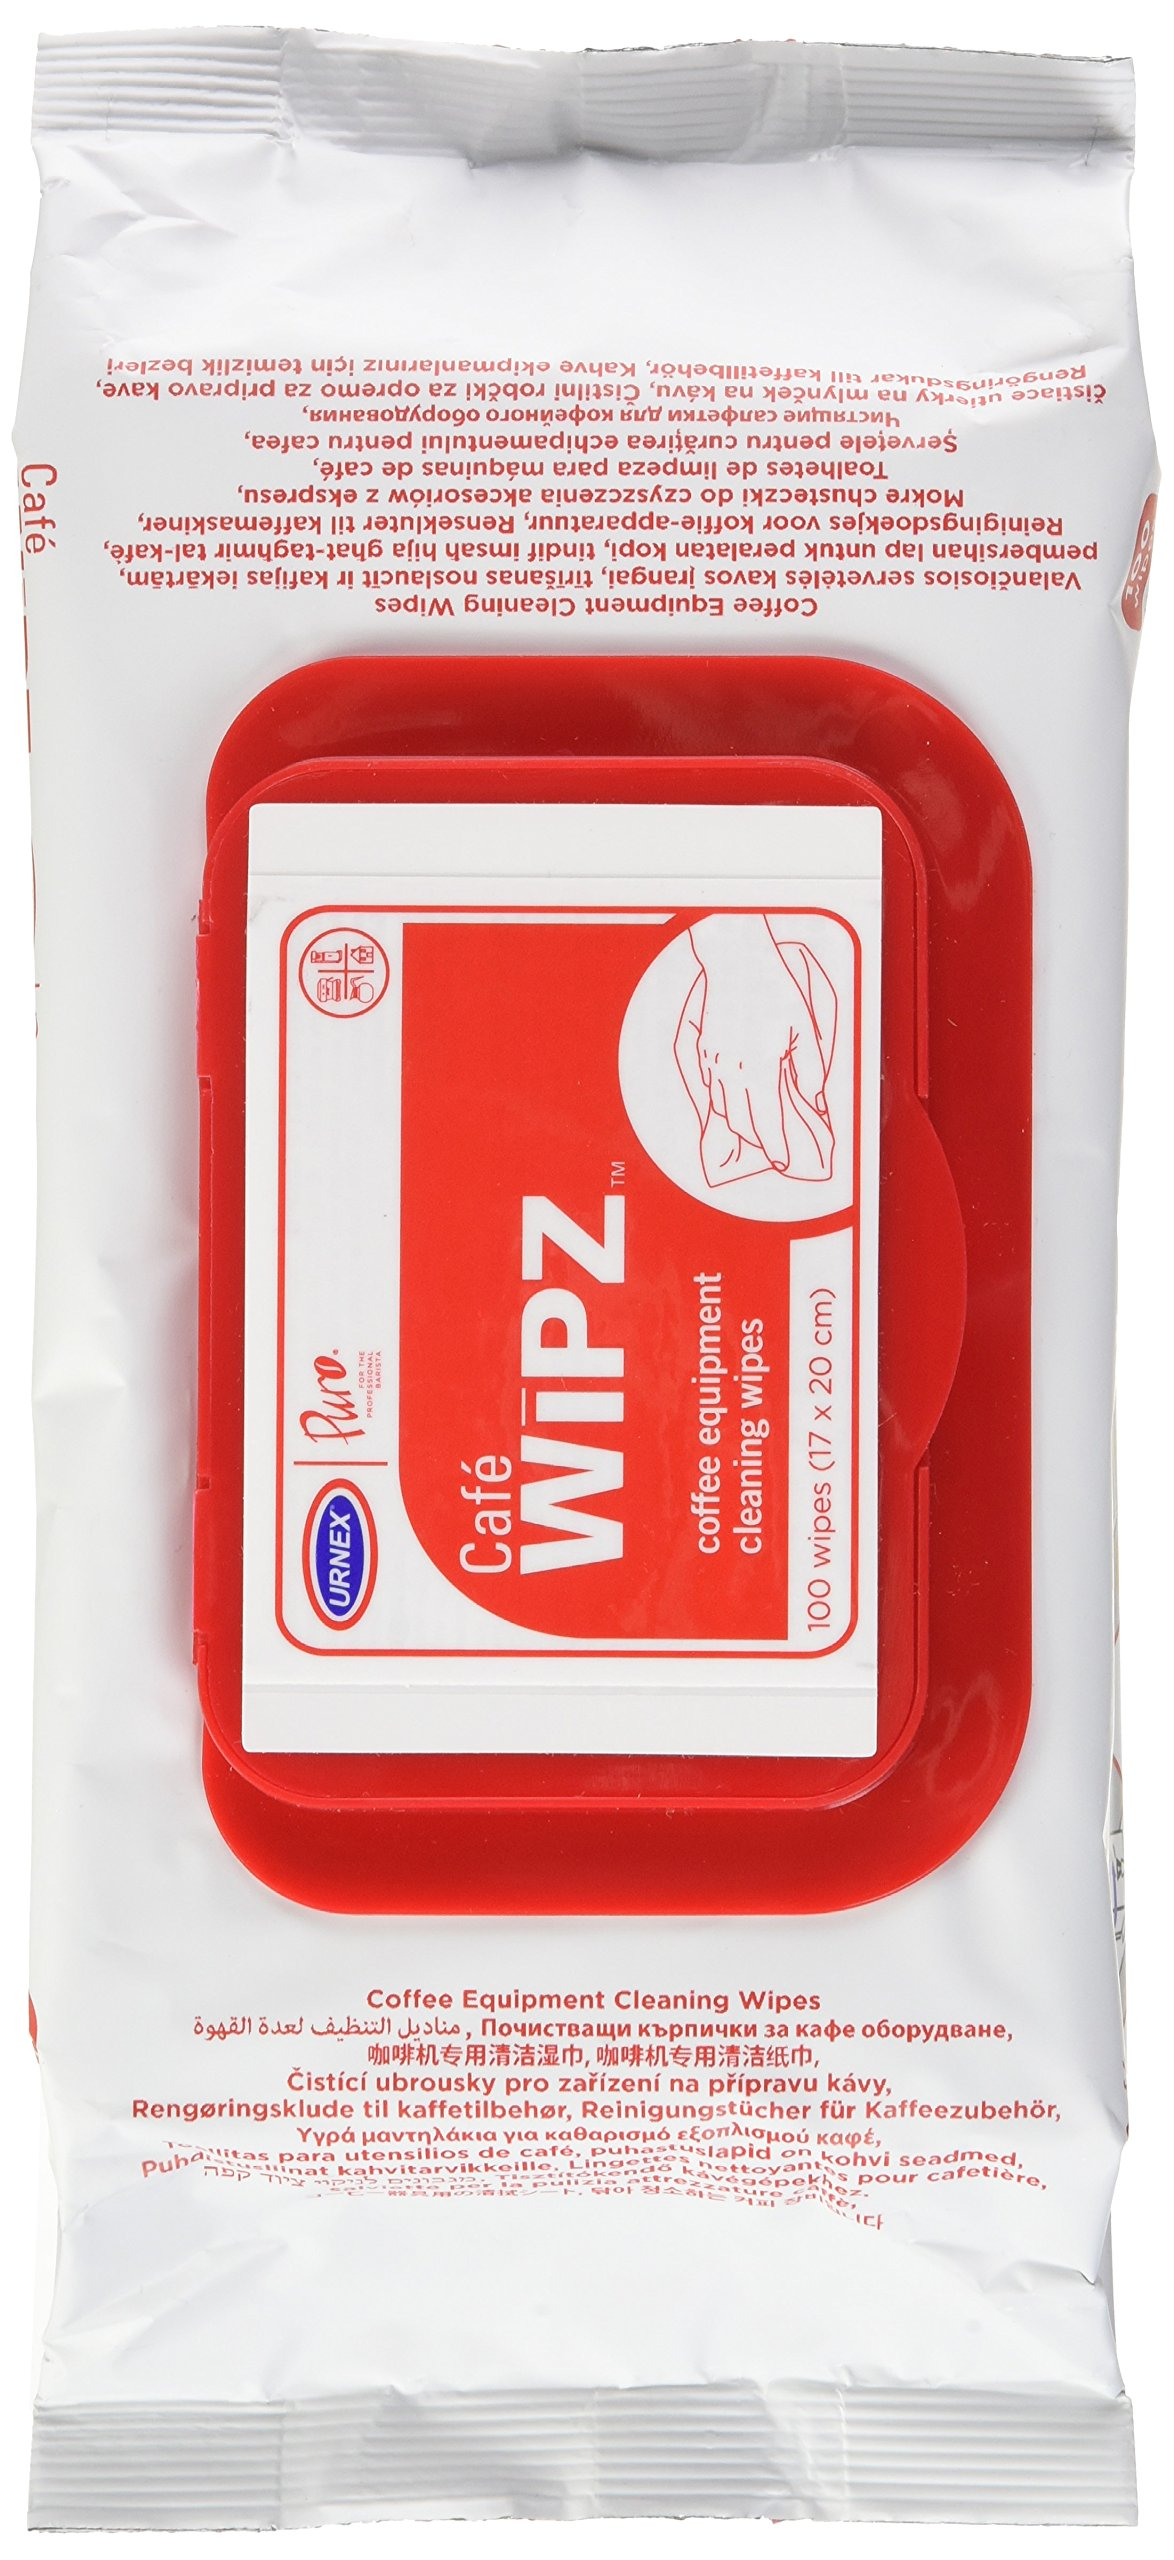 Urnex Café Wipz - 100 Count Bag - Professional Coffee Equipment Cleaning Wipes Fragrance Free Wipes Formulated with Cationic Detergents To Remove Milk and Coffee Residue